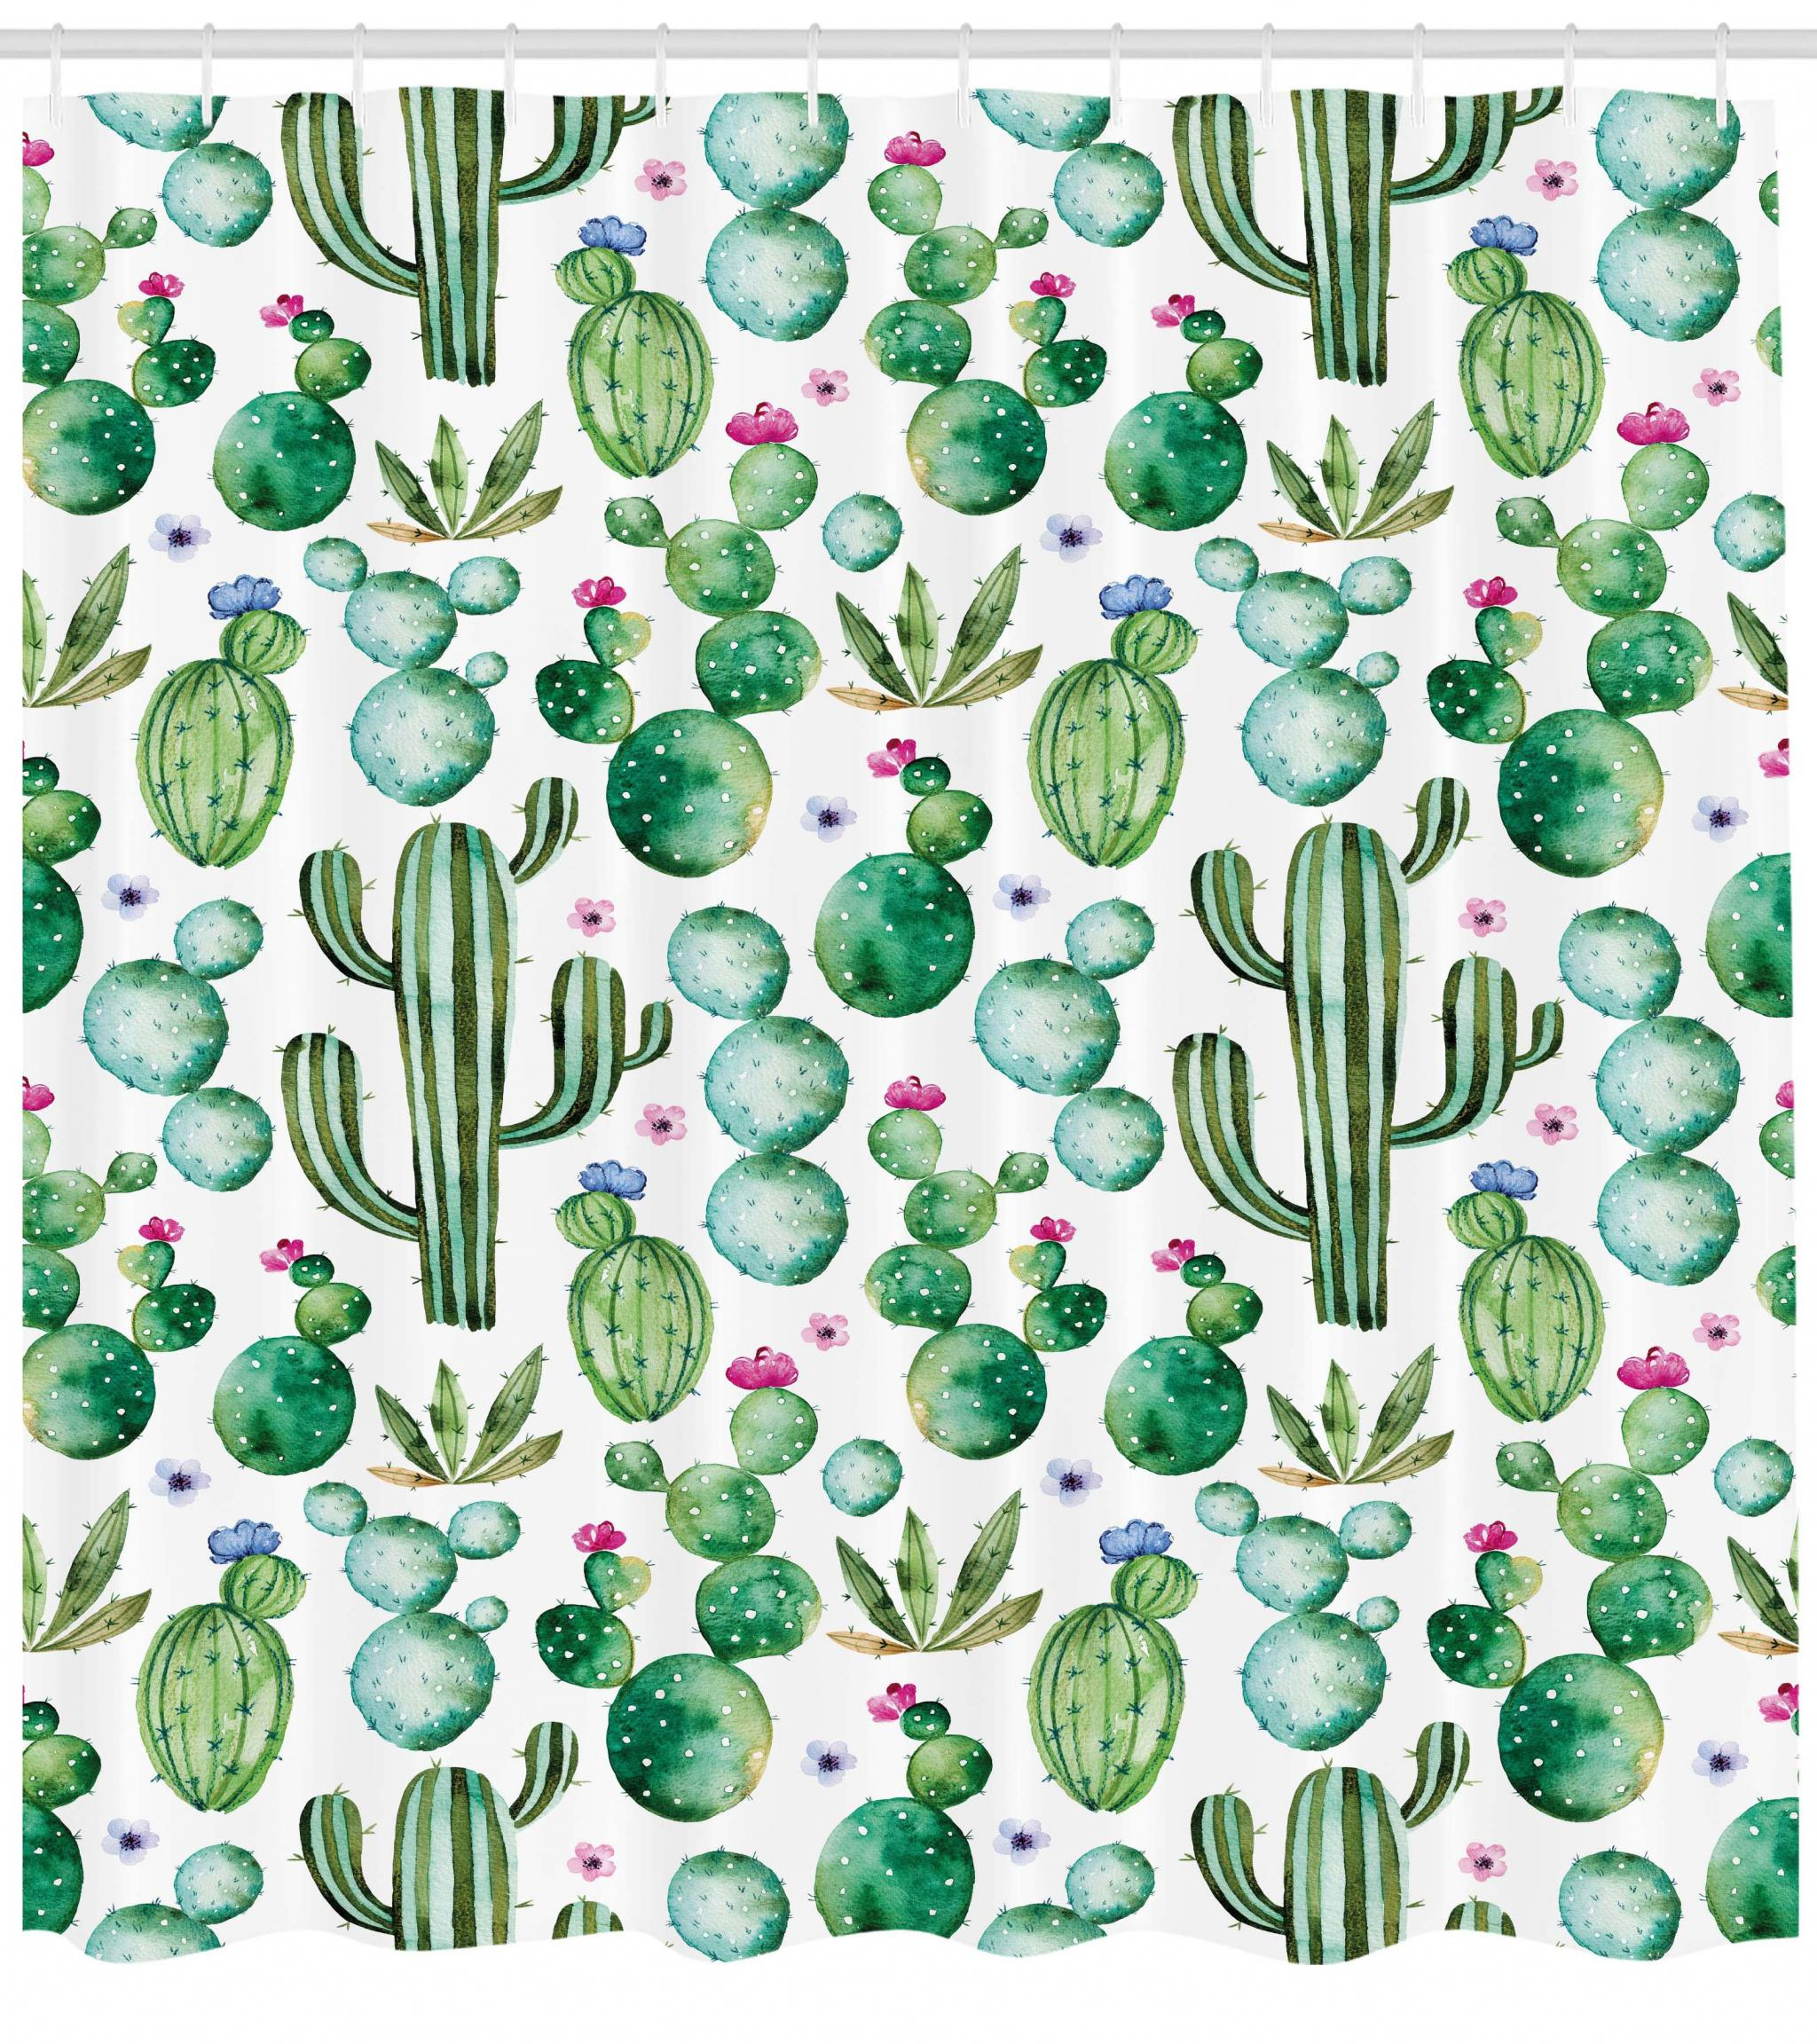 Green Shower Curtain Mexican Texas Cactus Plants Spikes Cartoon Like Artistic Print Fabric